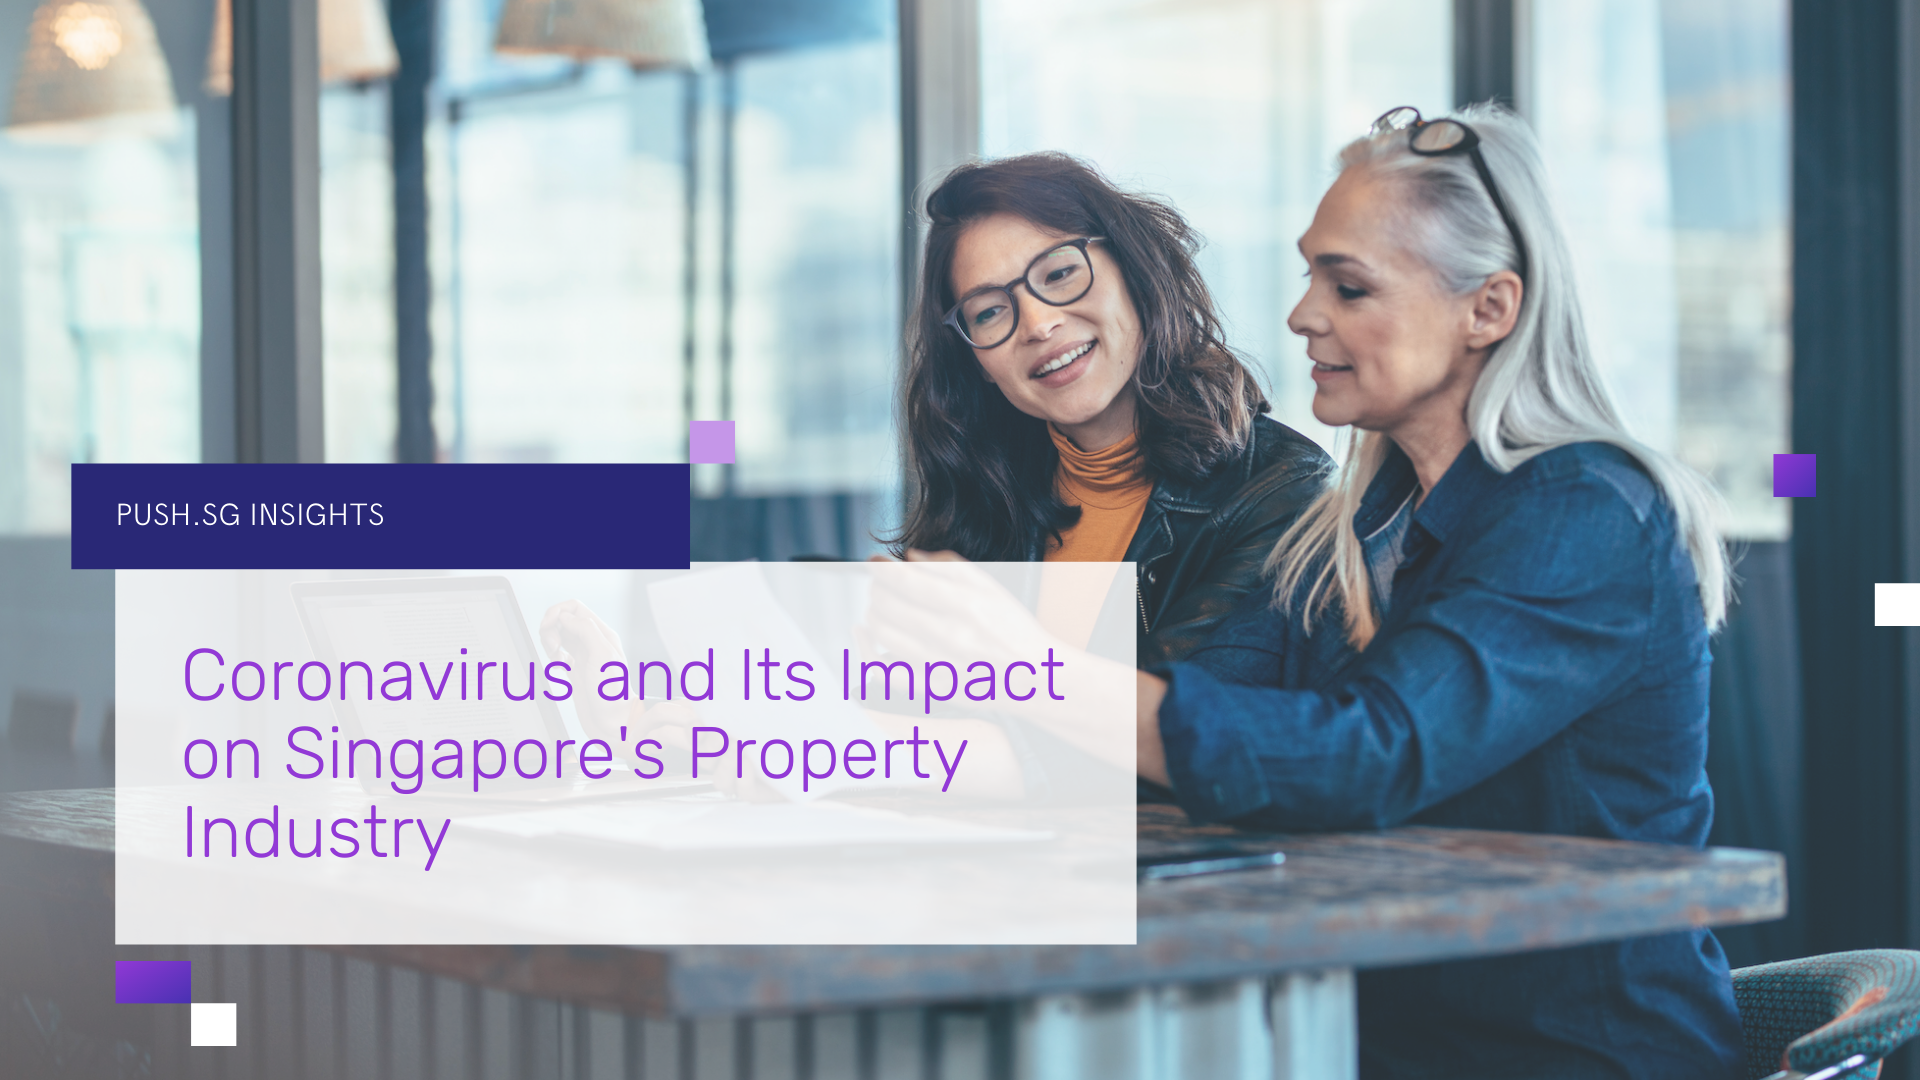 Coronavirus and its impact on Singapore's Property Industry